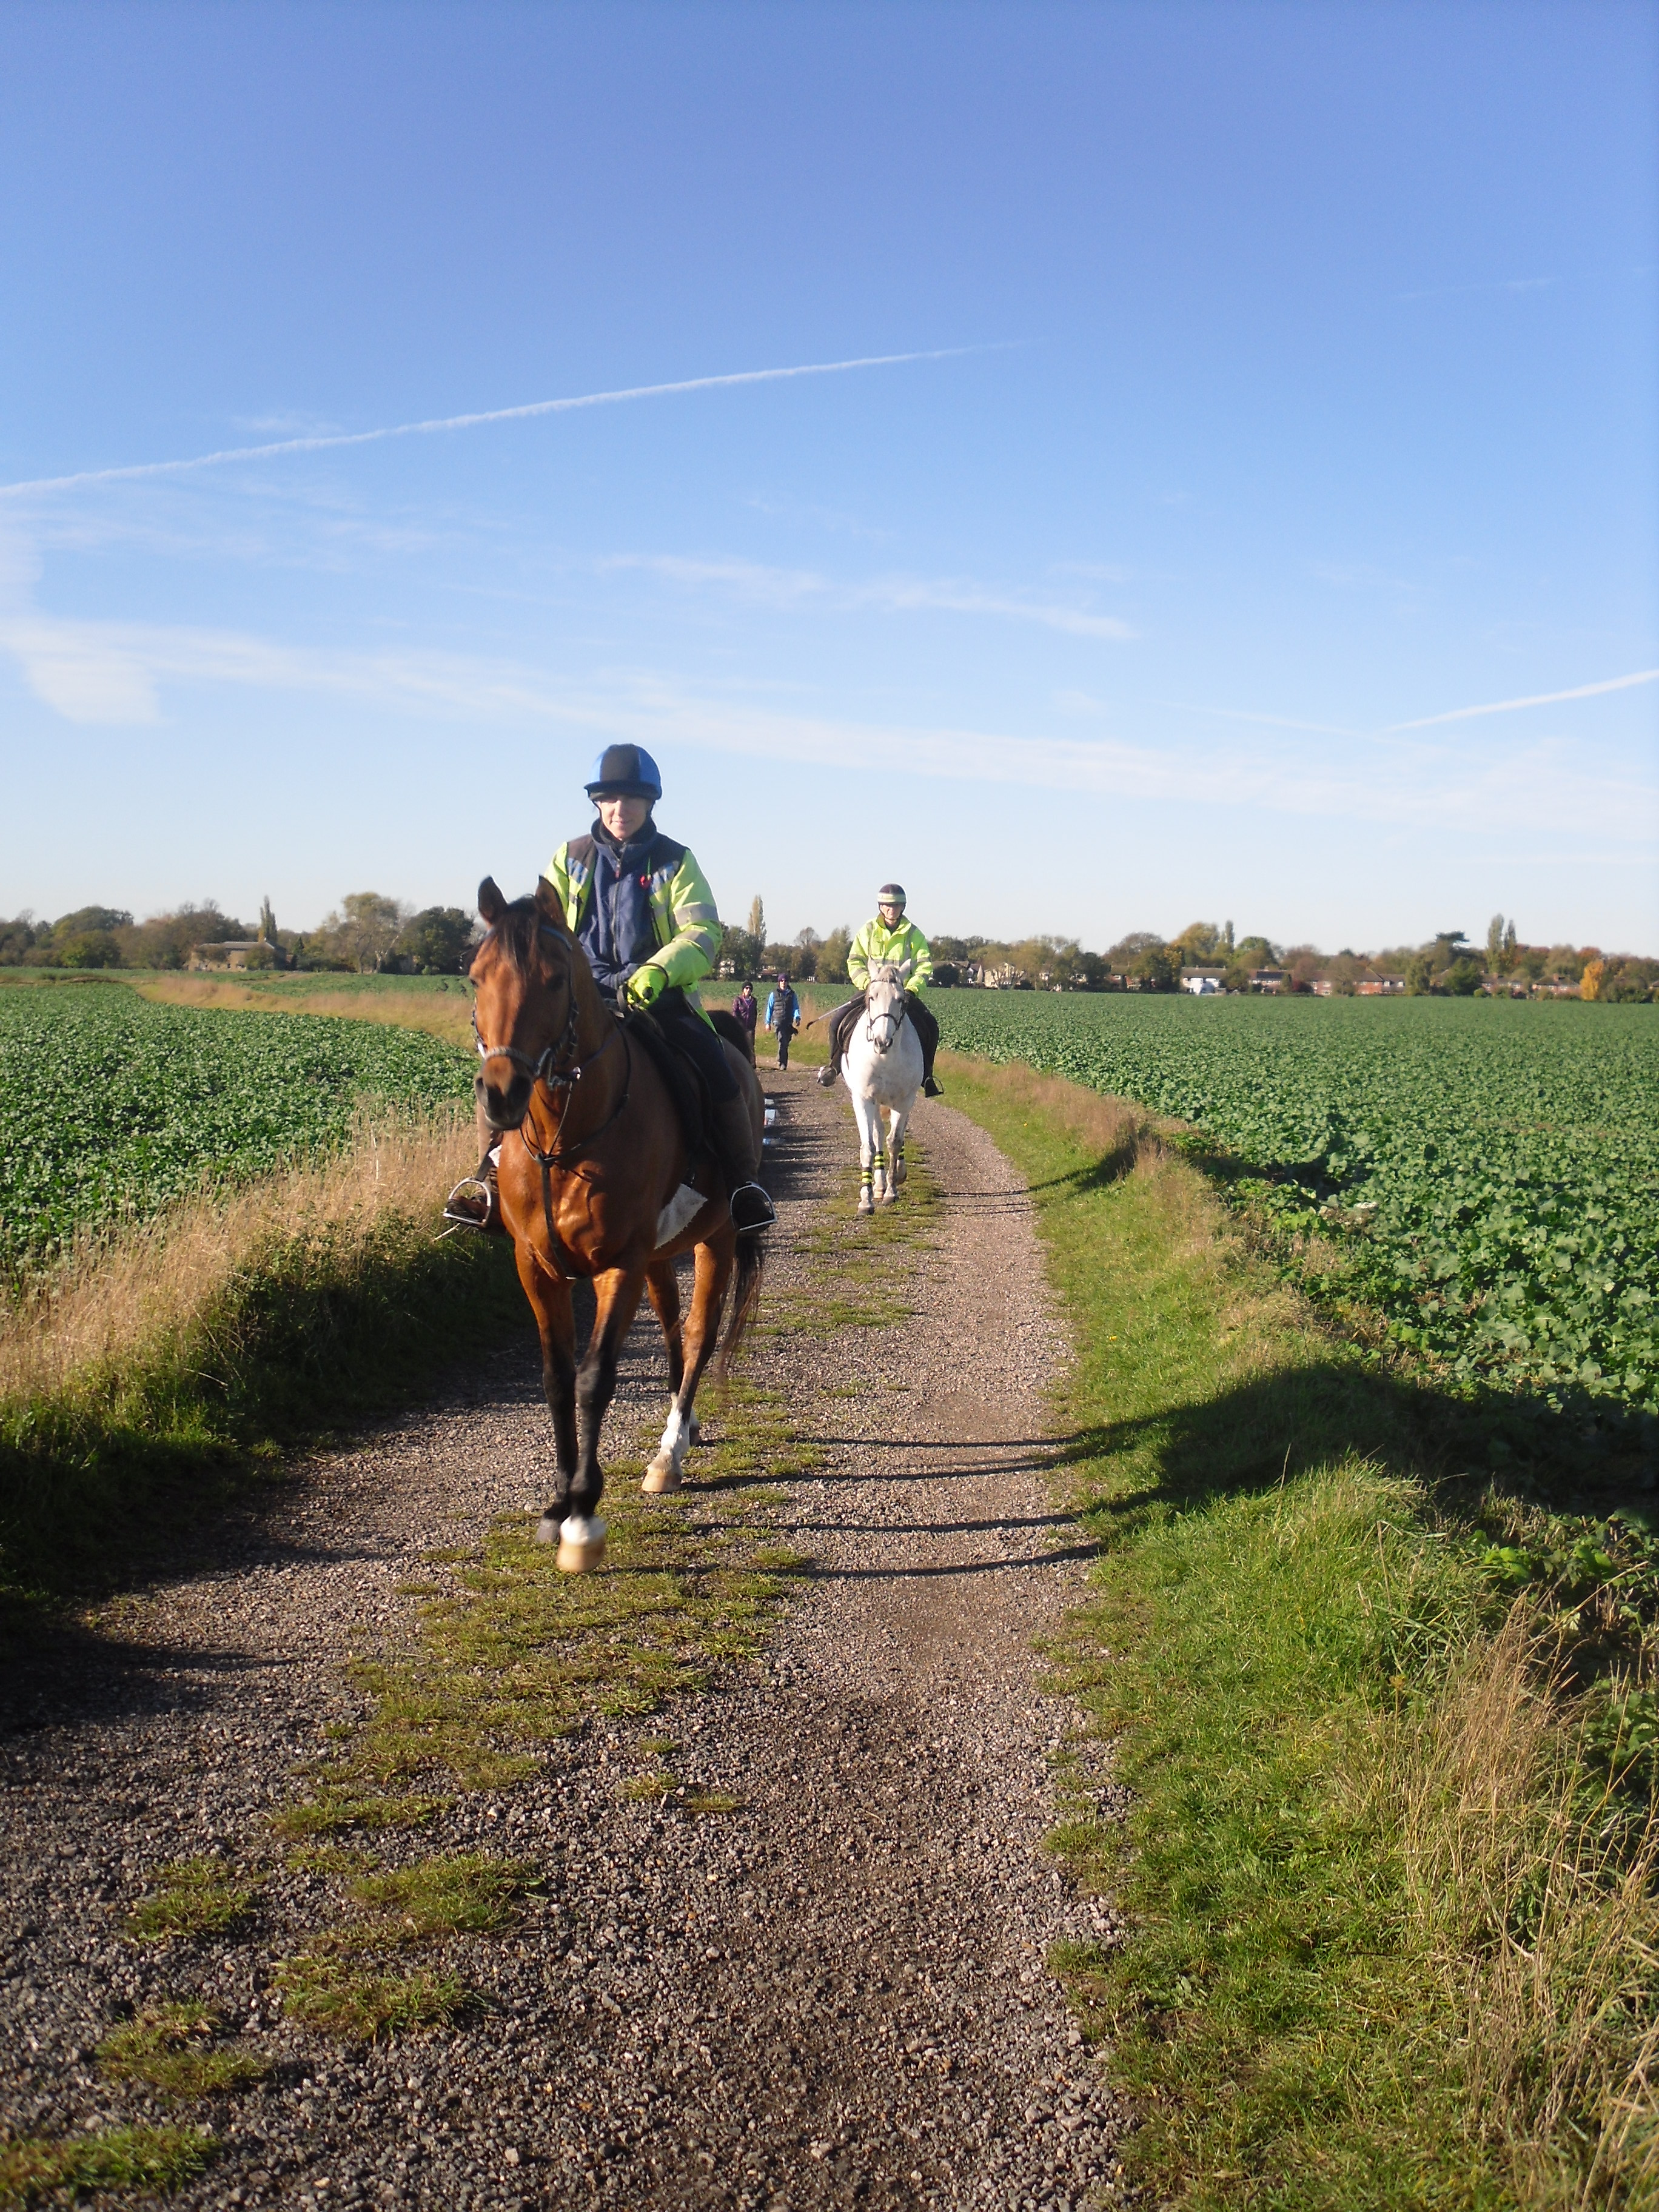 Hard work pays off for Shelford and District Bridleways Group following the upgrade of two footpaths linking three villages